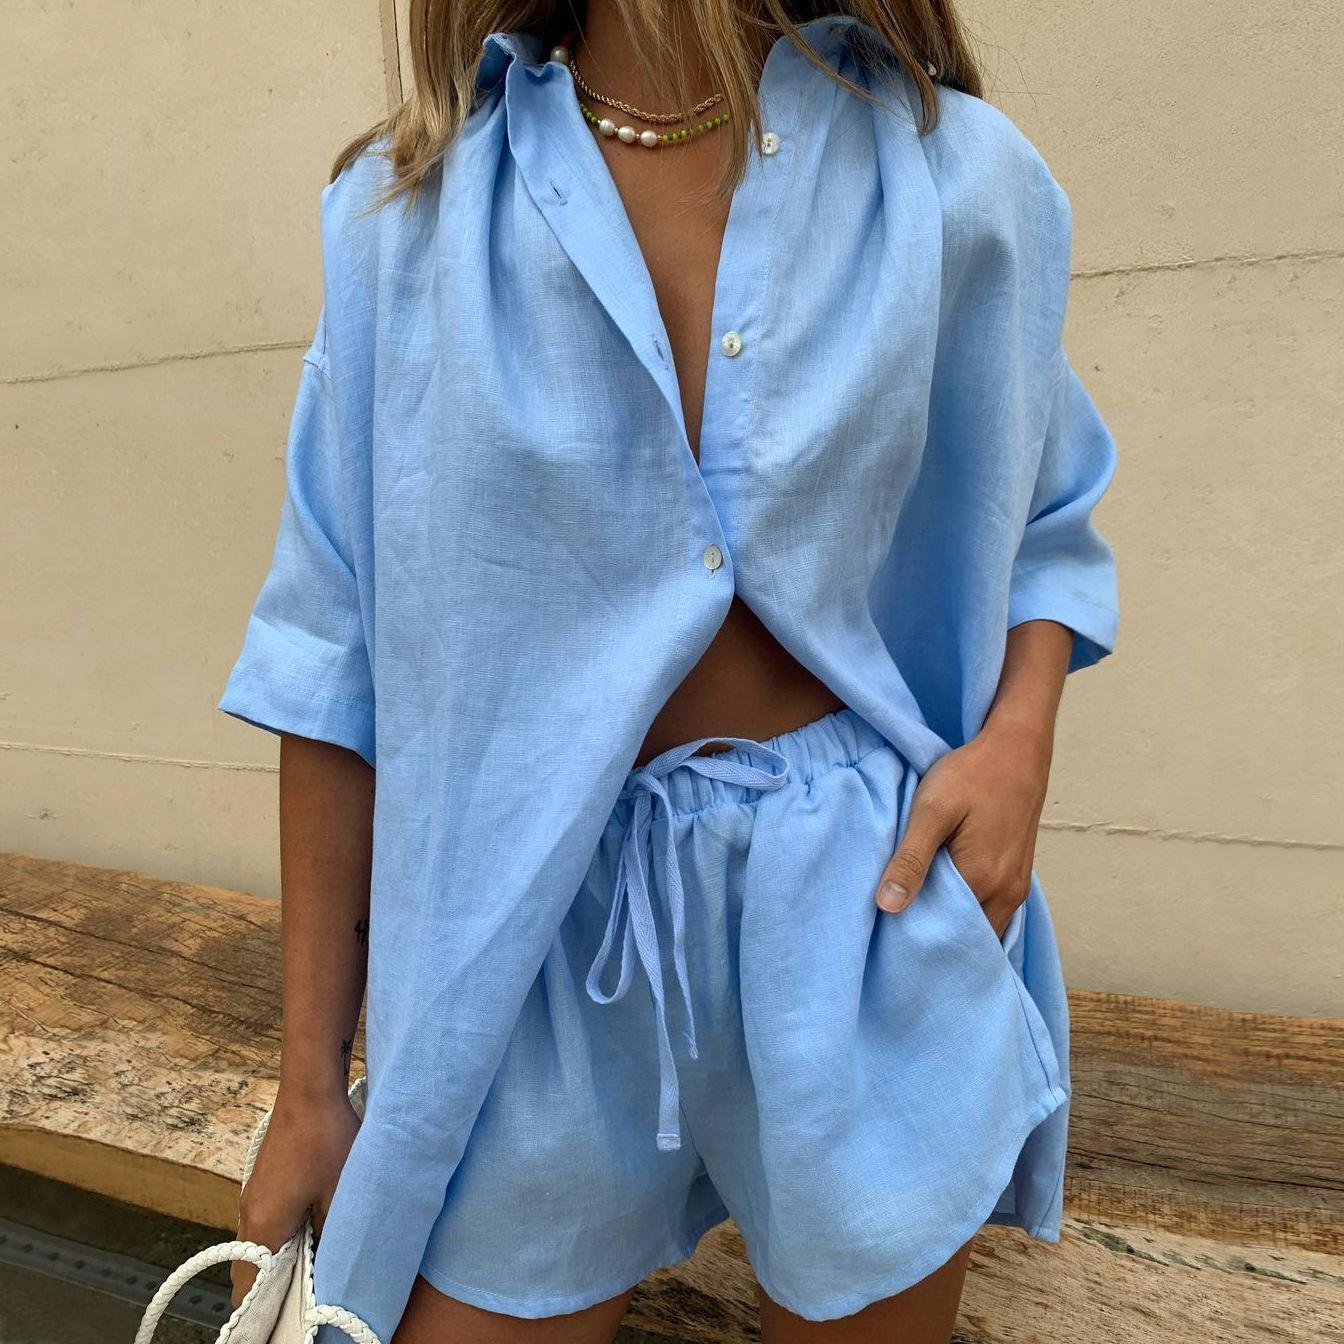 2021 Women's Two Piece Pants Solid Color Single-Breasted Short-Sleeved Shirt Shorts Loose Fashion Casual Suit